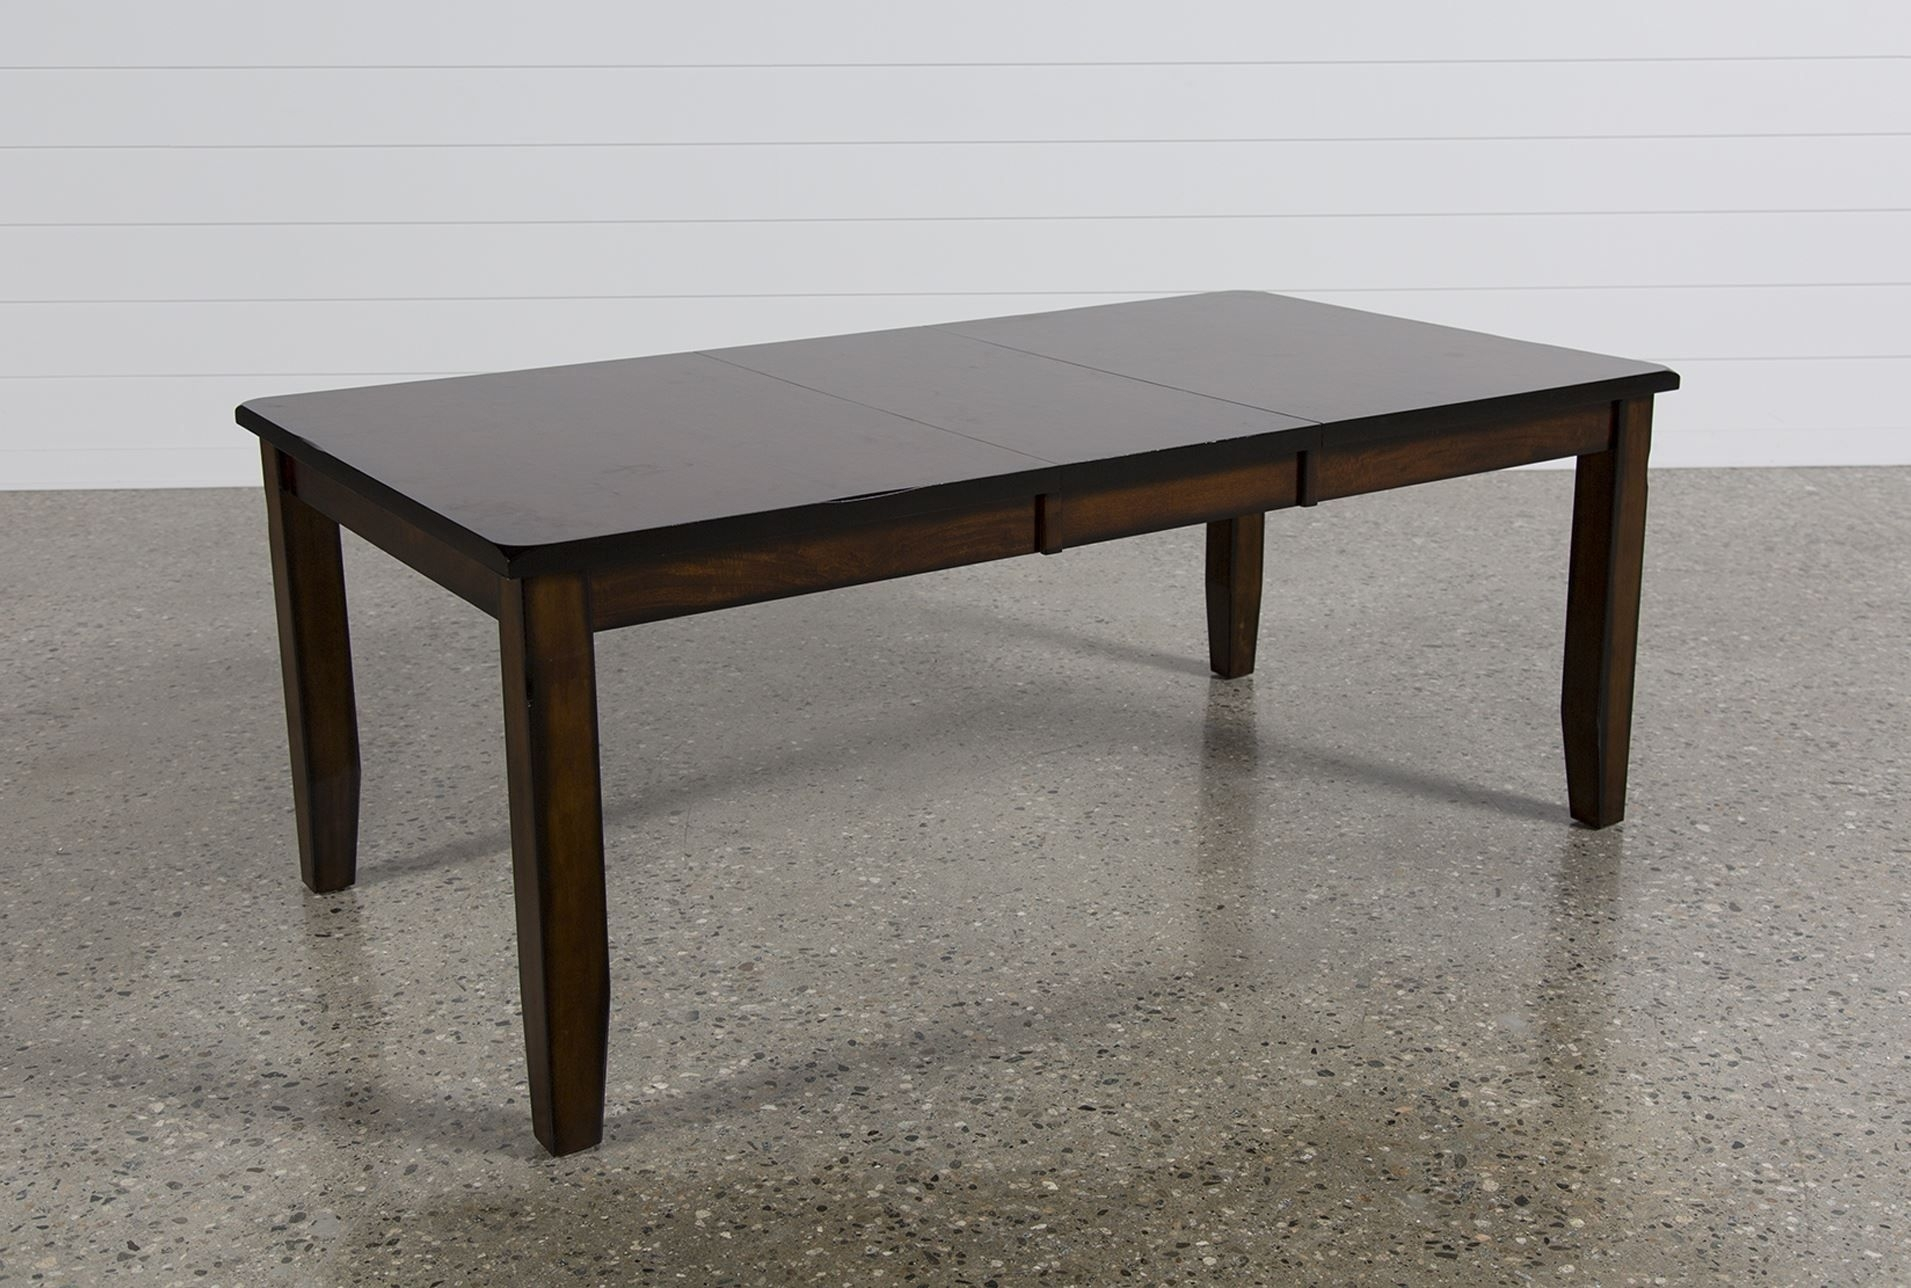 Rocco Extension Dining Table, Dark Espresso | Extensions Regarding Current Rocco Extension Dining Tables (Image 14 of 20)